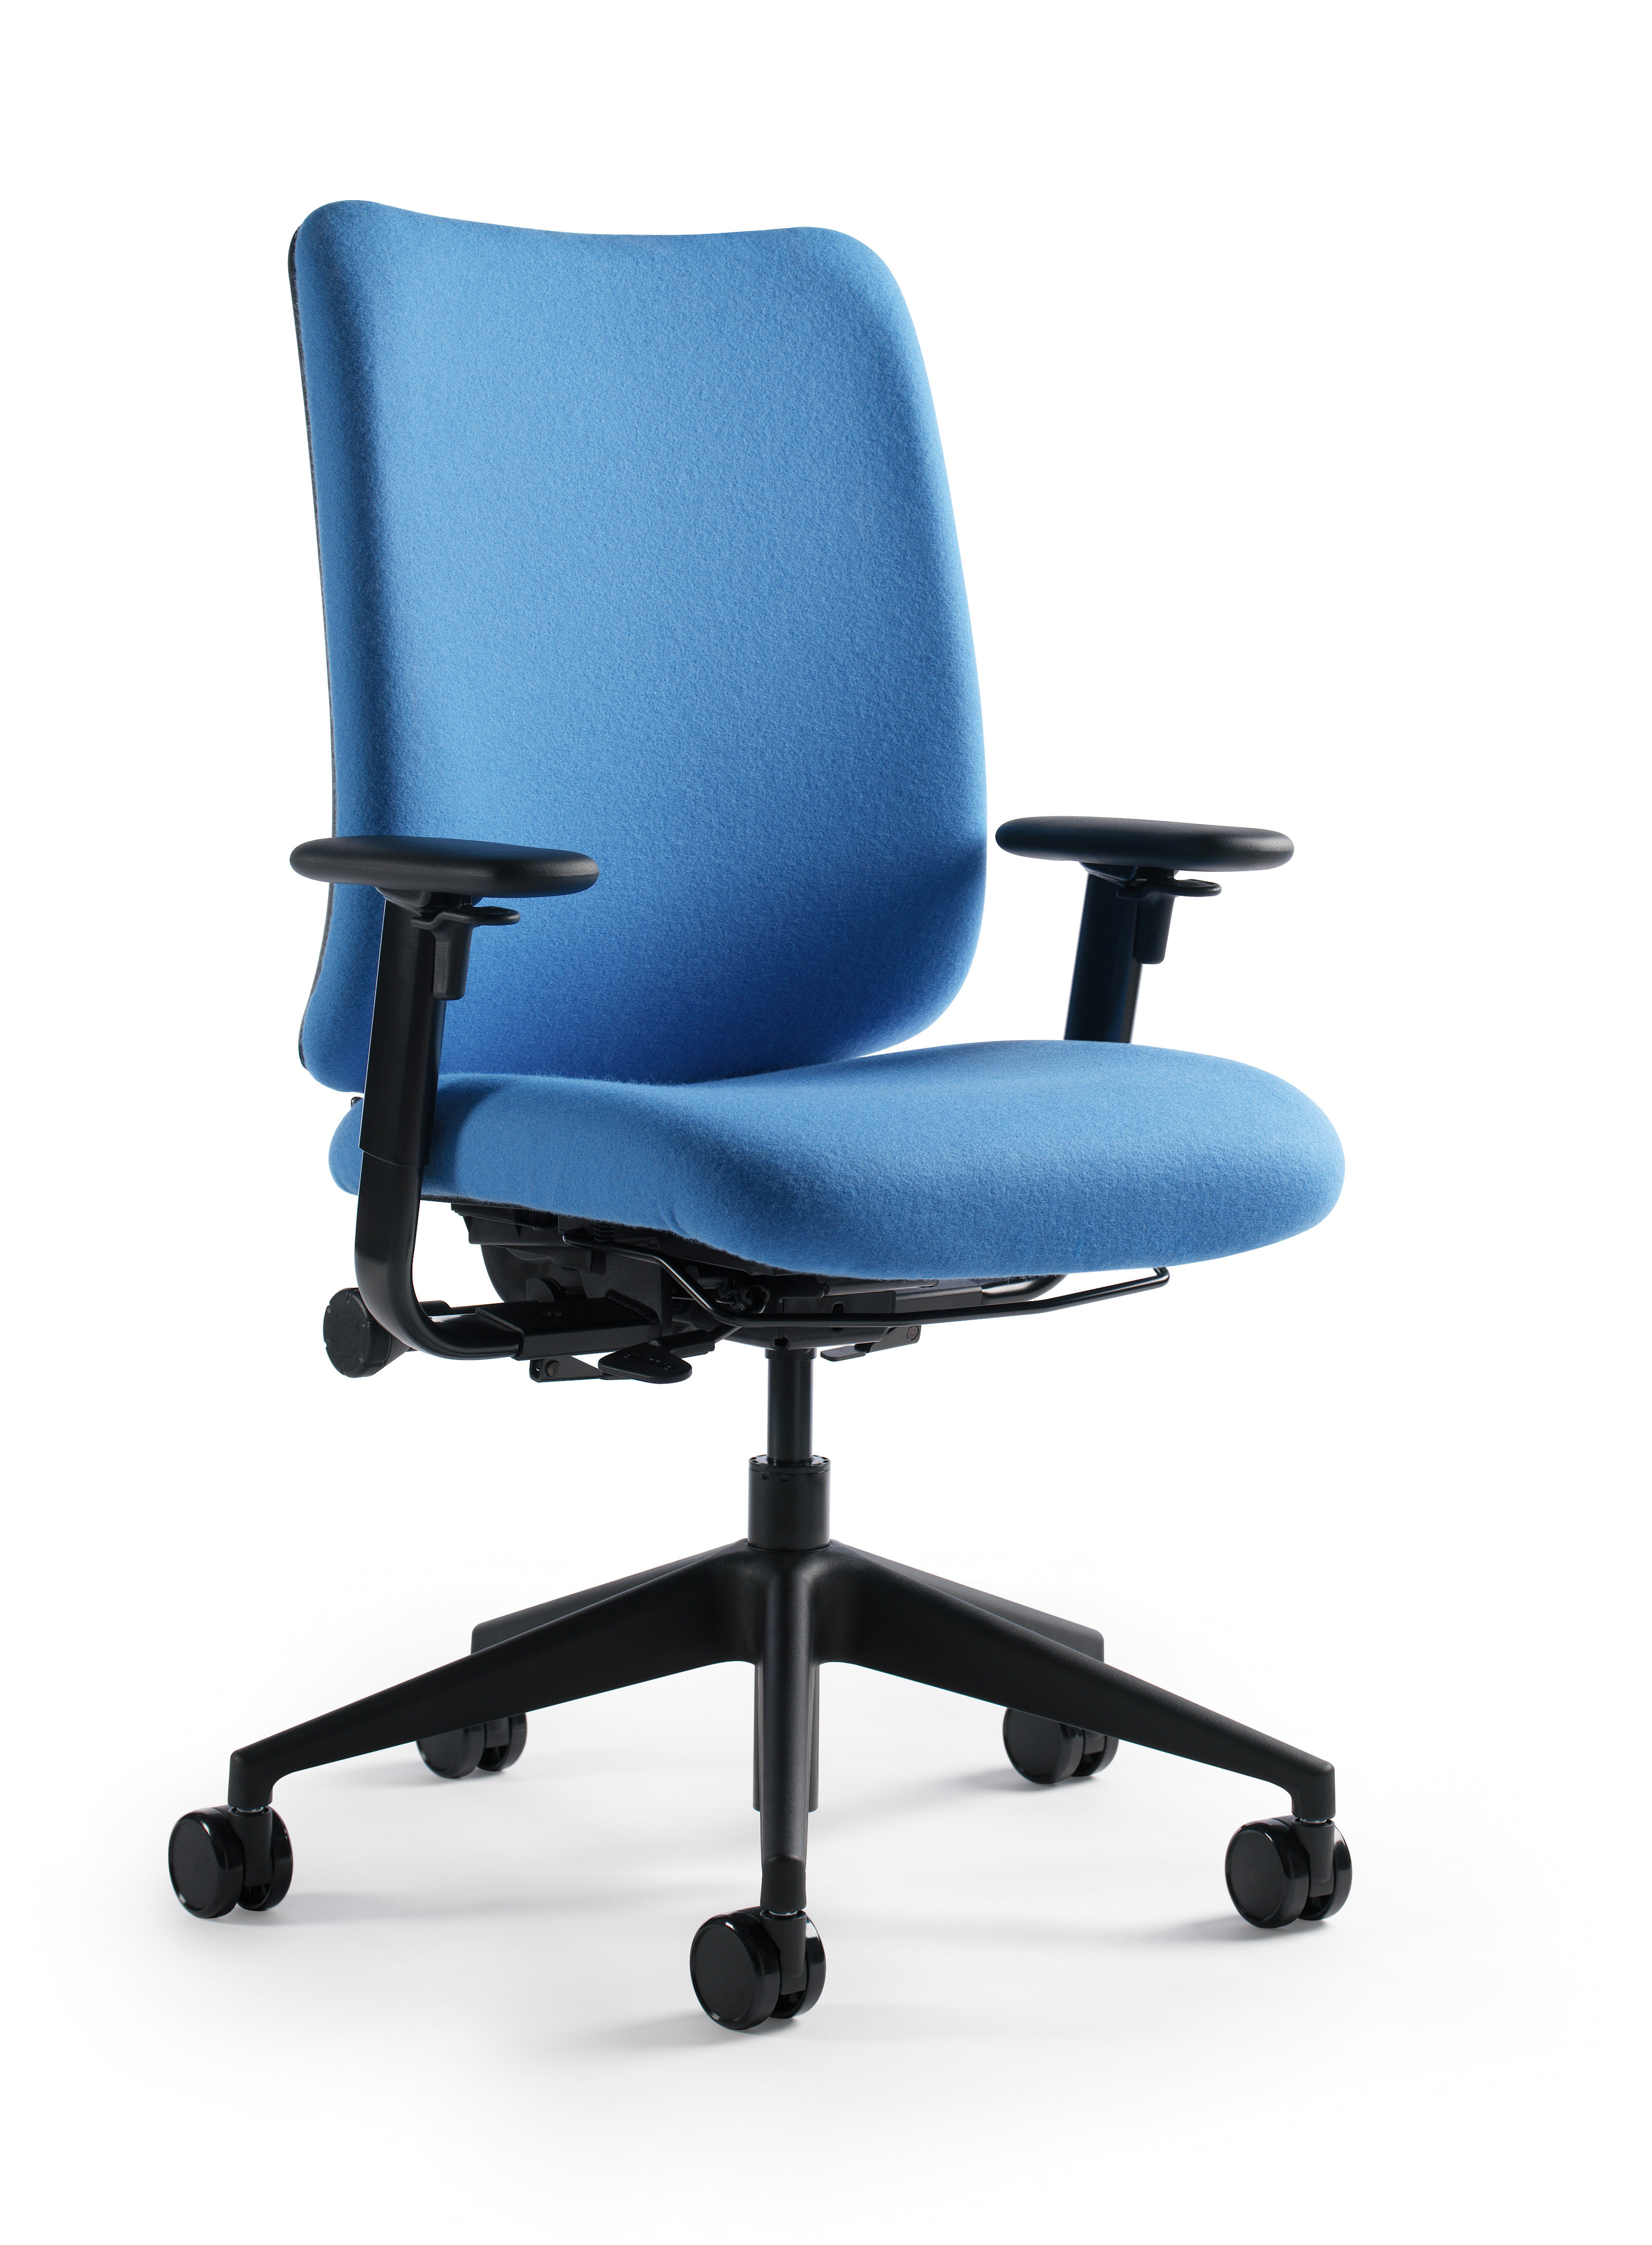 Crew Task Chair with arms by Turnstone